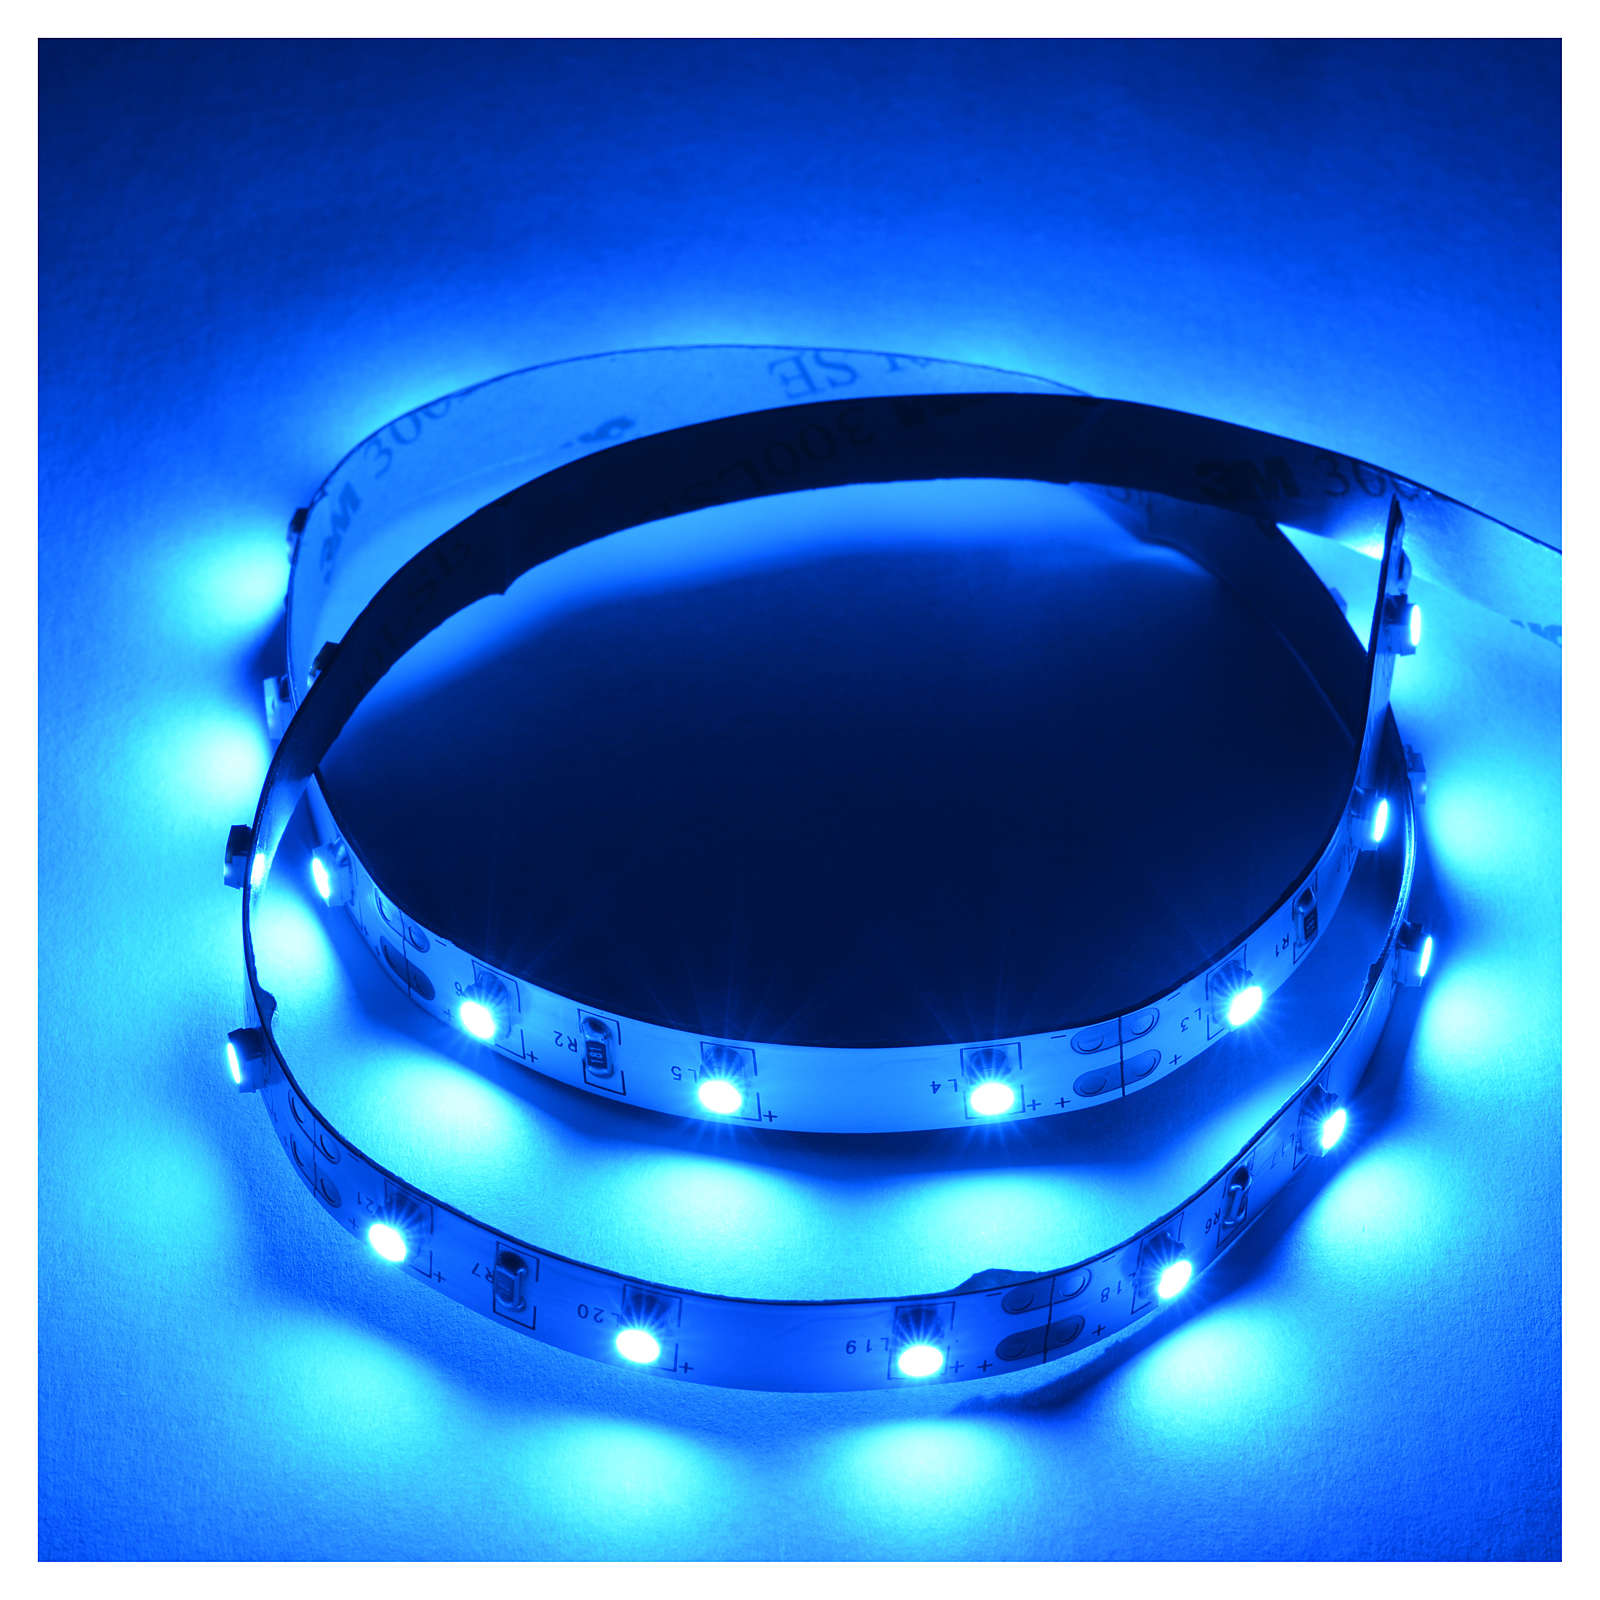 Bande Power PS 60 leds 0,8x100 cm bleu FrialPower 4